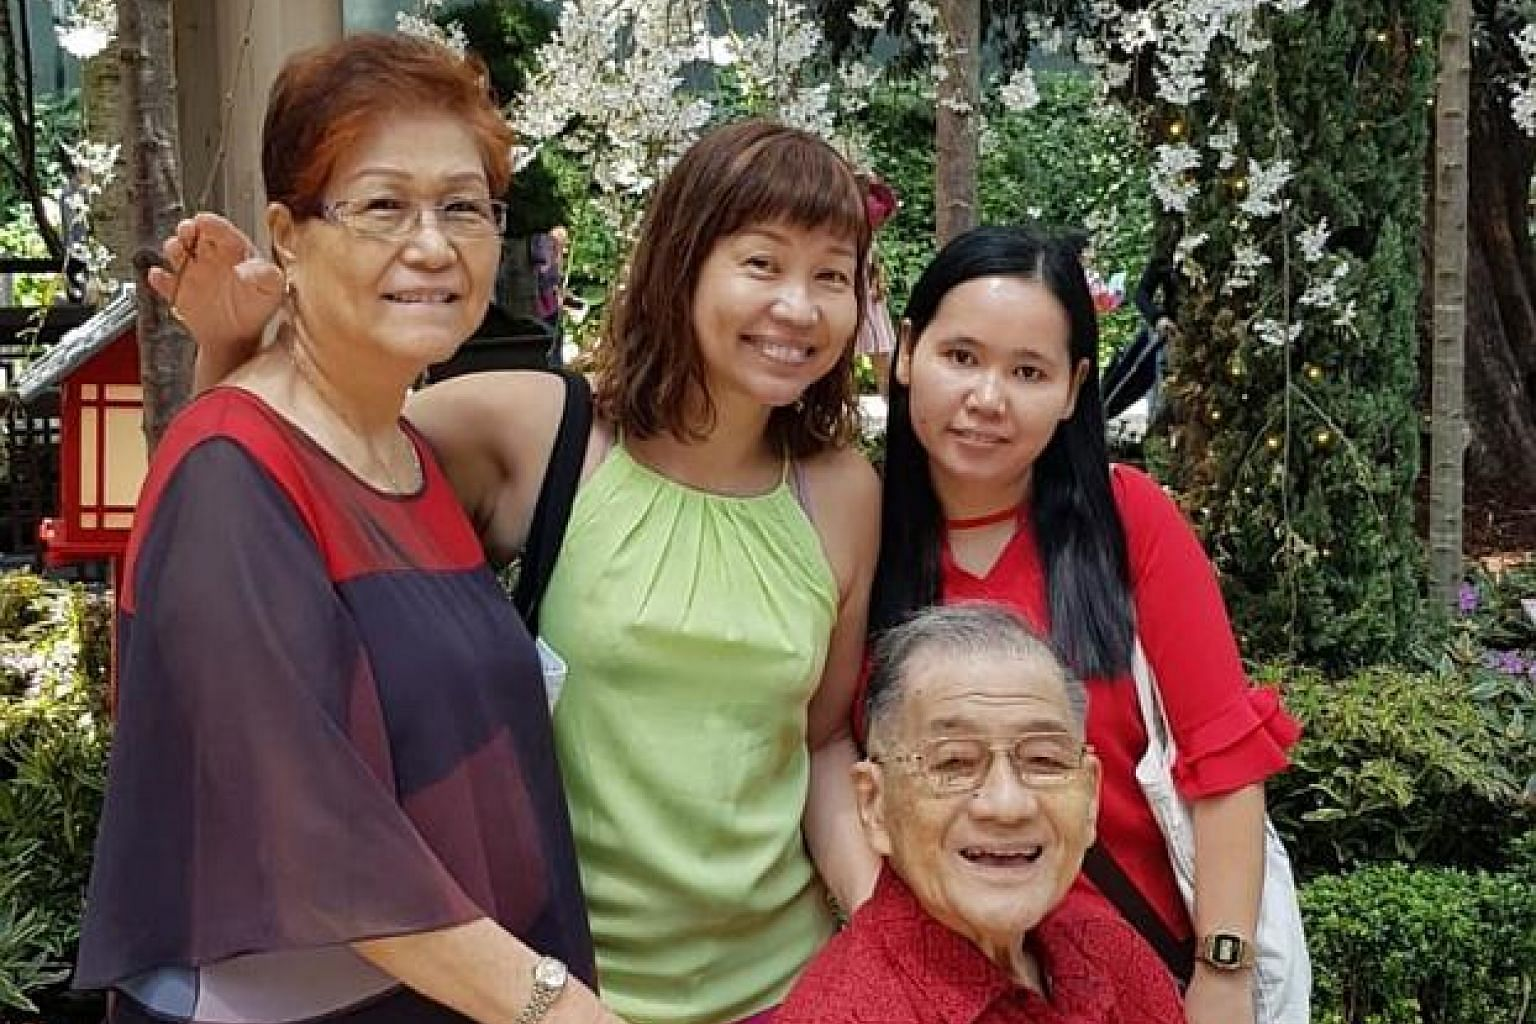 Invest editor Lorna Tan (in green top) with her parents Ann Lee and Allan Tan, and helper Halimah during a family outing to the Flower Dome at Gardens by the Bay.